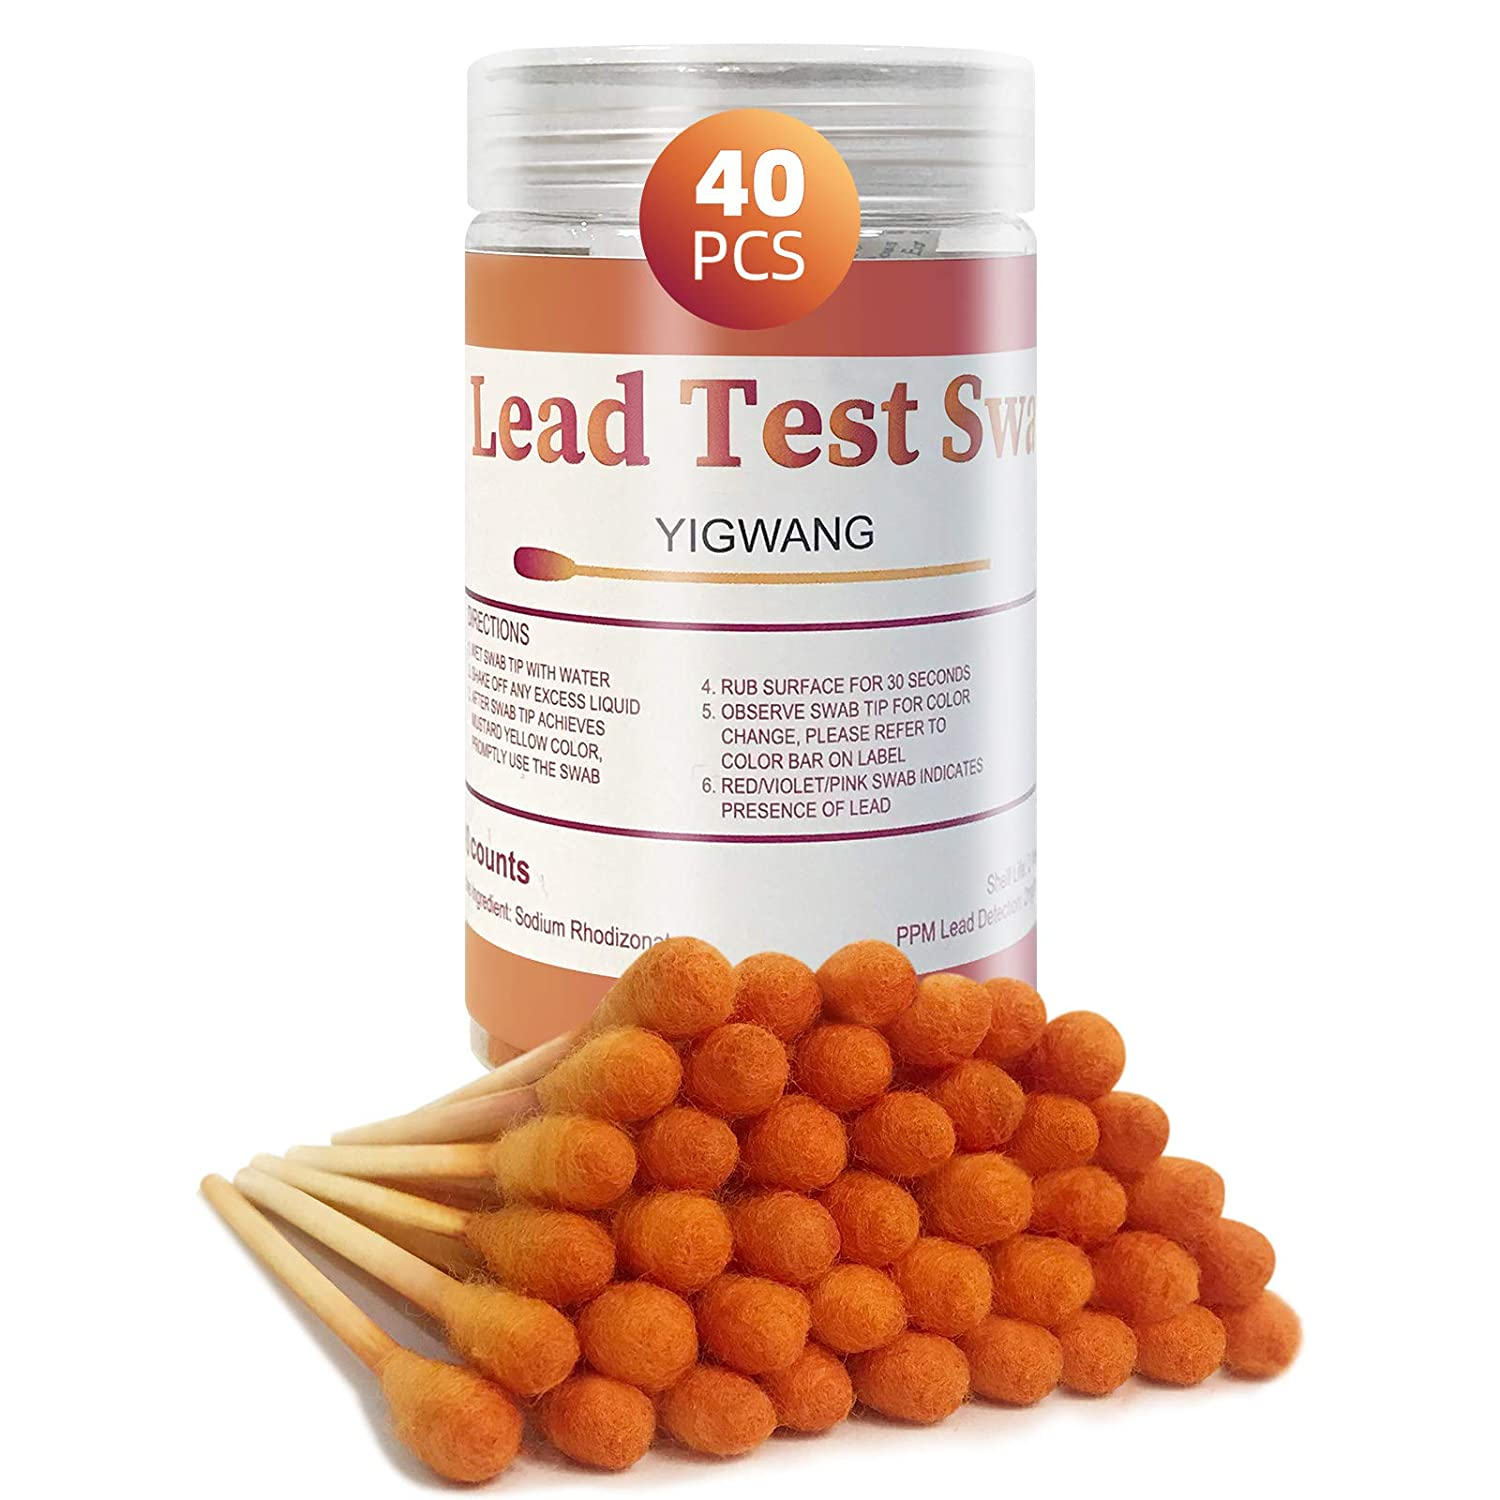 YIGWANG 40 pcs Lead Paint Test Kit, Professional Lead Testing kit for Home, Get Precise Result Within 30 Seconds